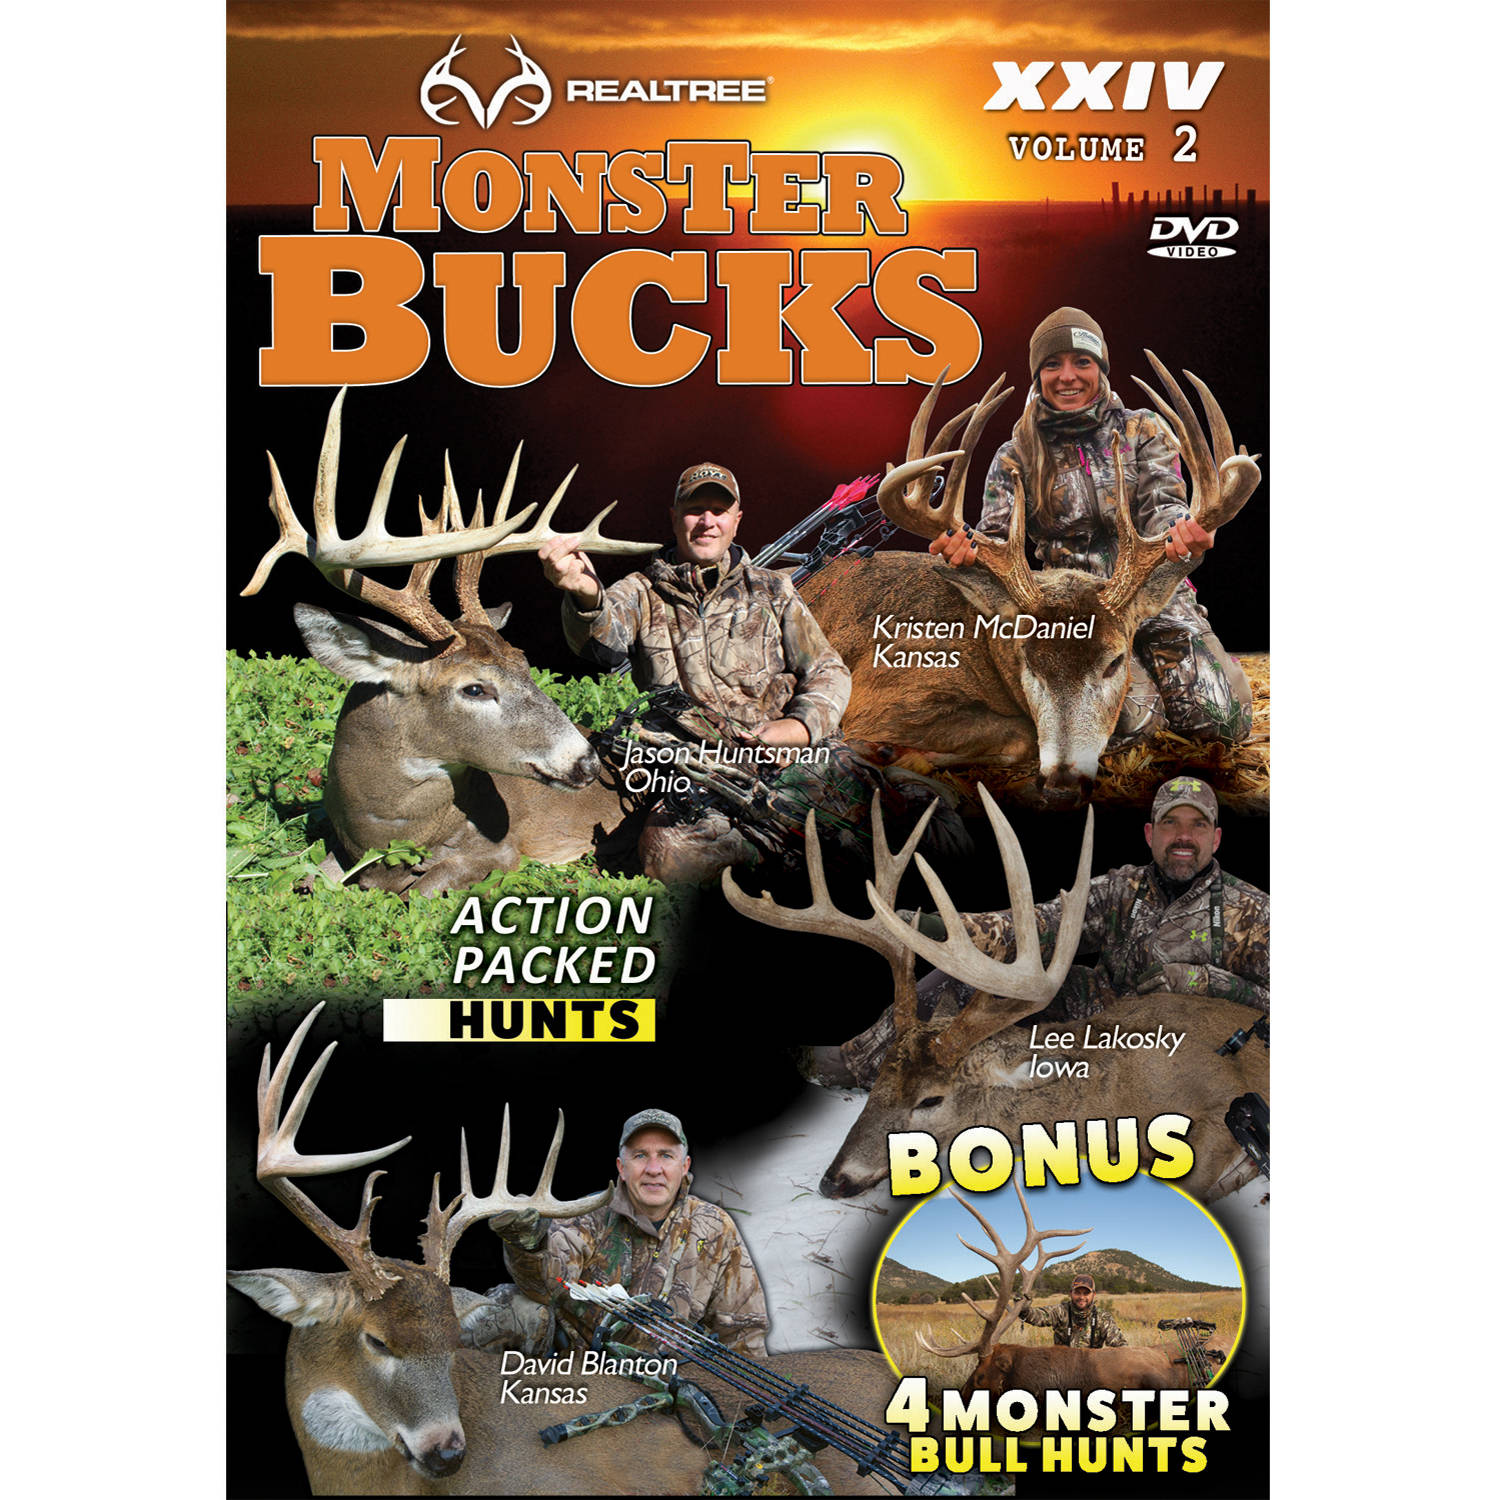 Realtree Outdoors DVD Monster Bucks XXIV, Volume 2 by Realtree Outdoors